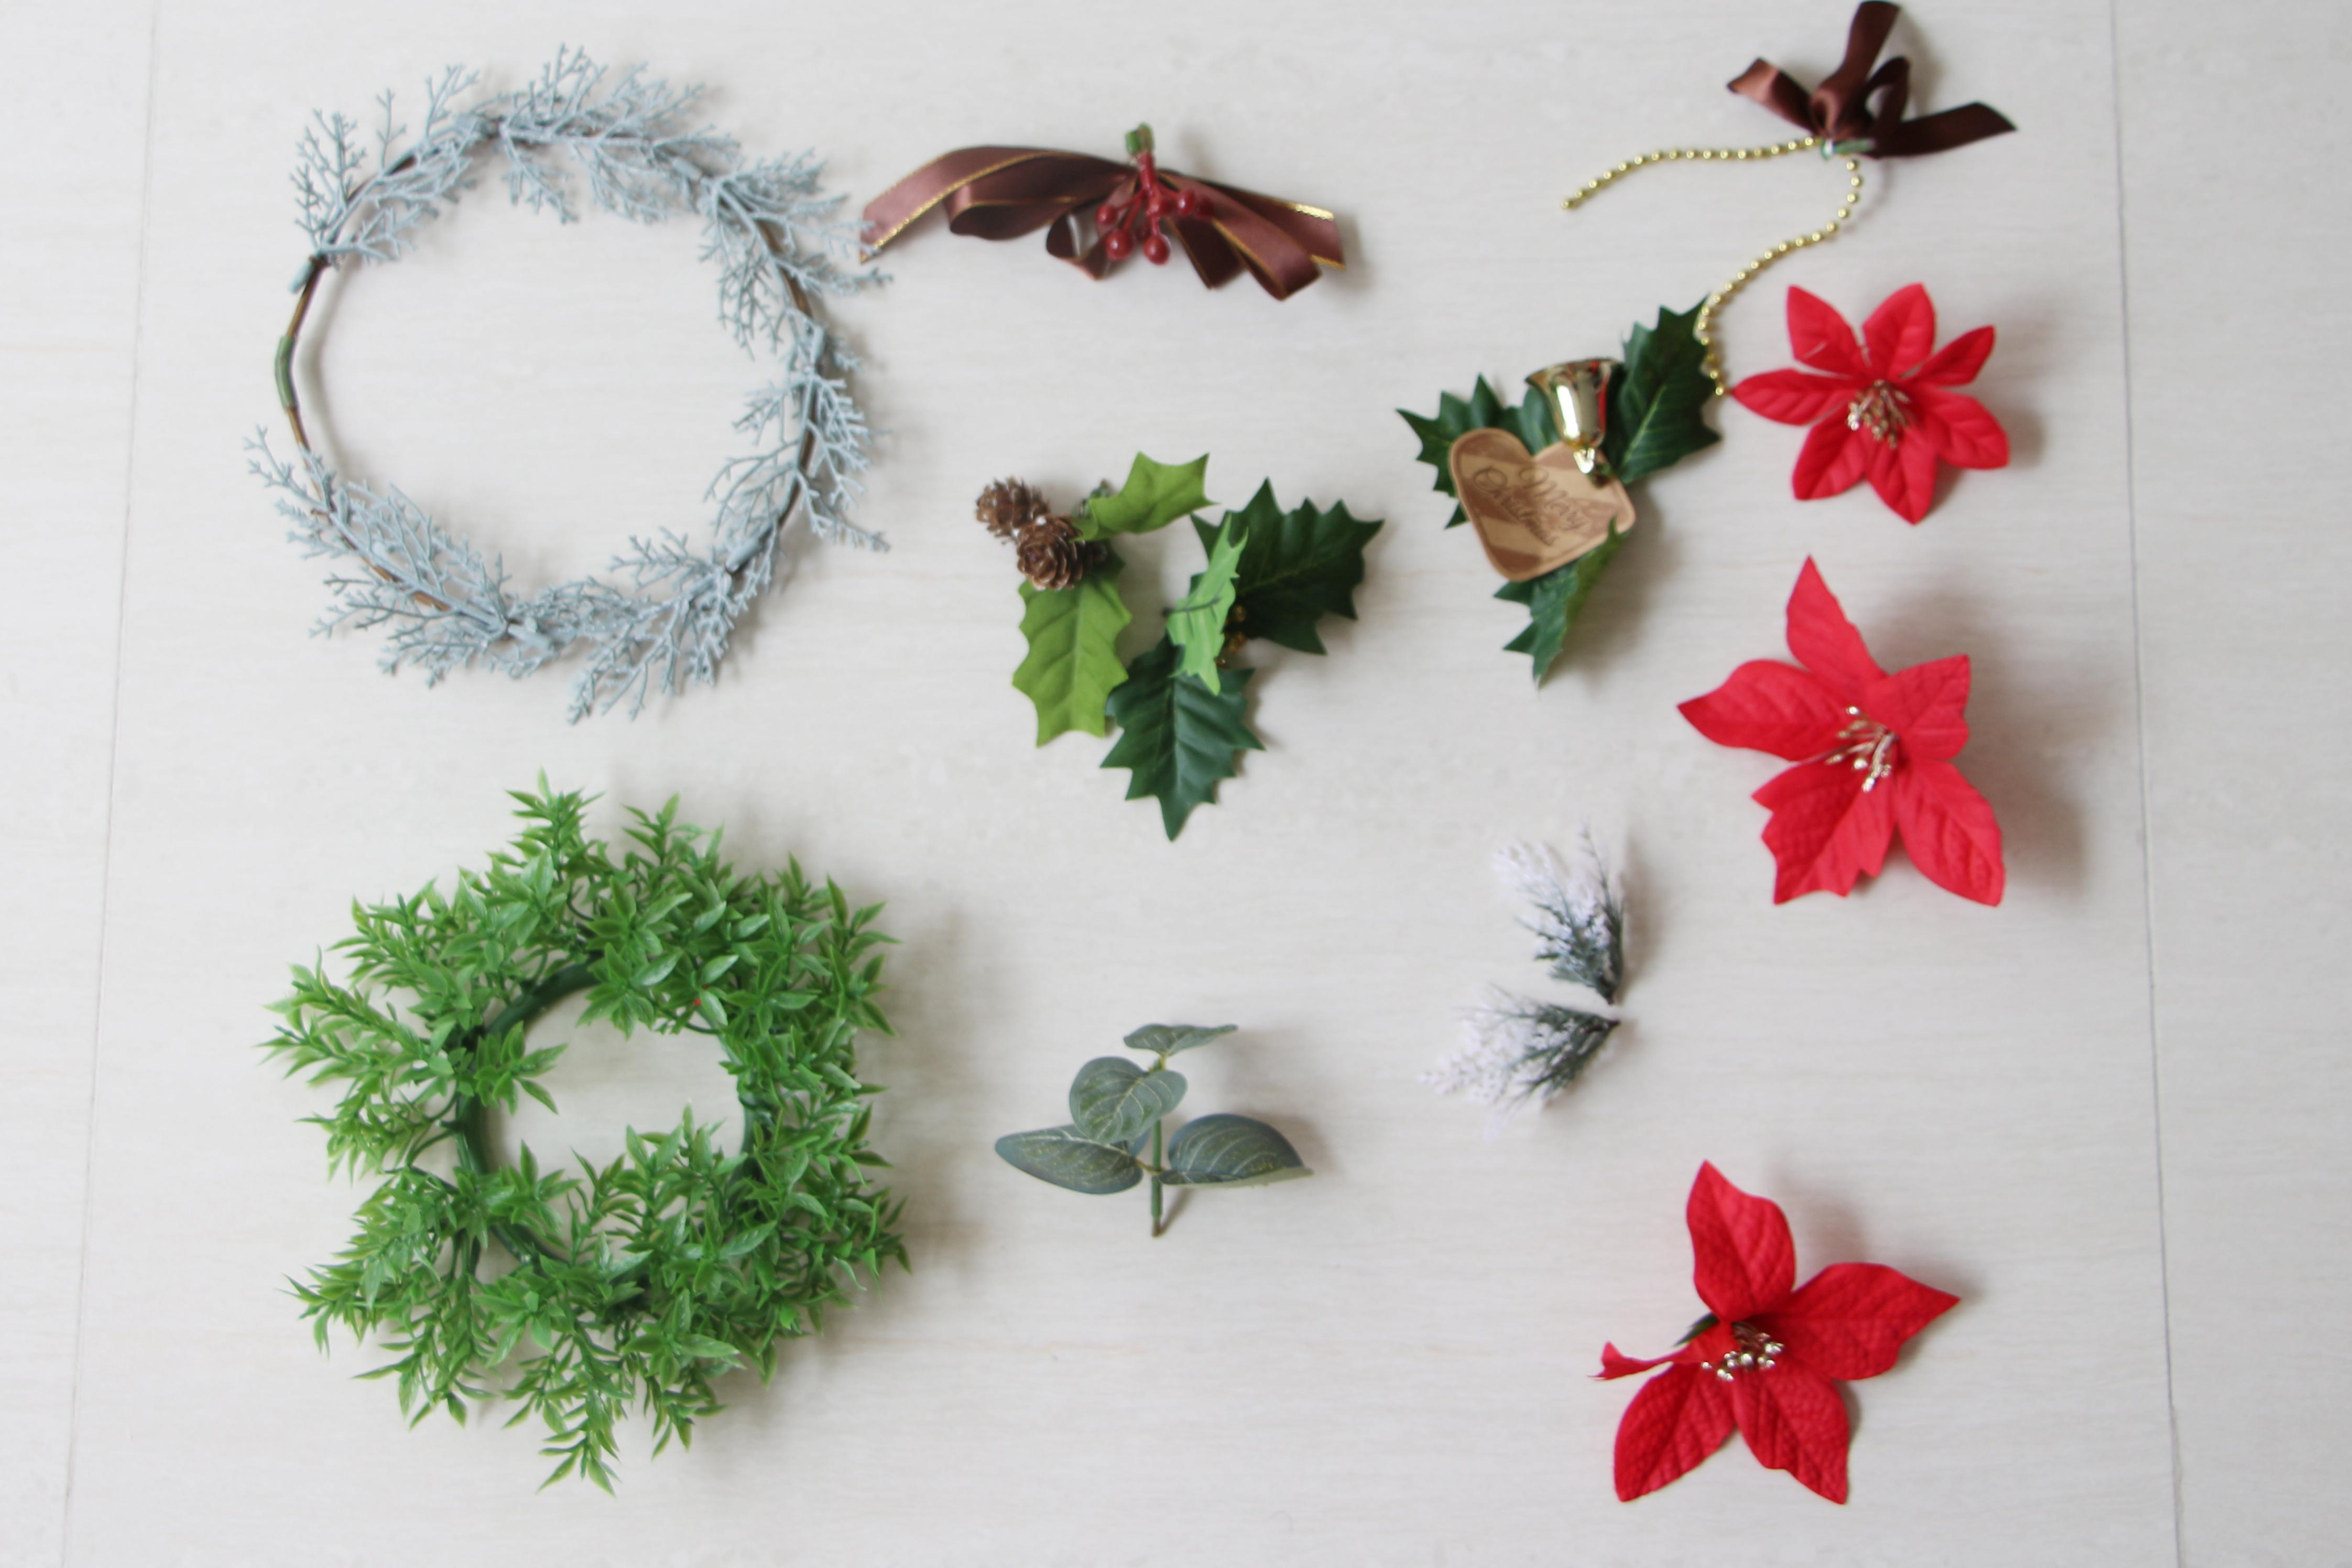 Diy Christmas Wreath Daiso Supplies Sarach Stefith